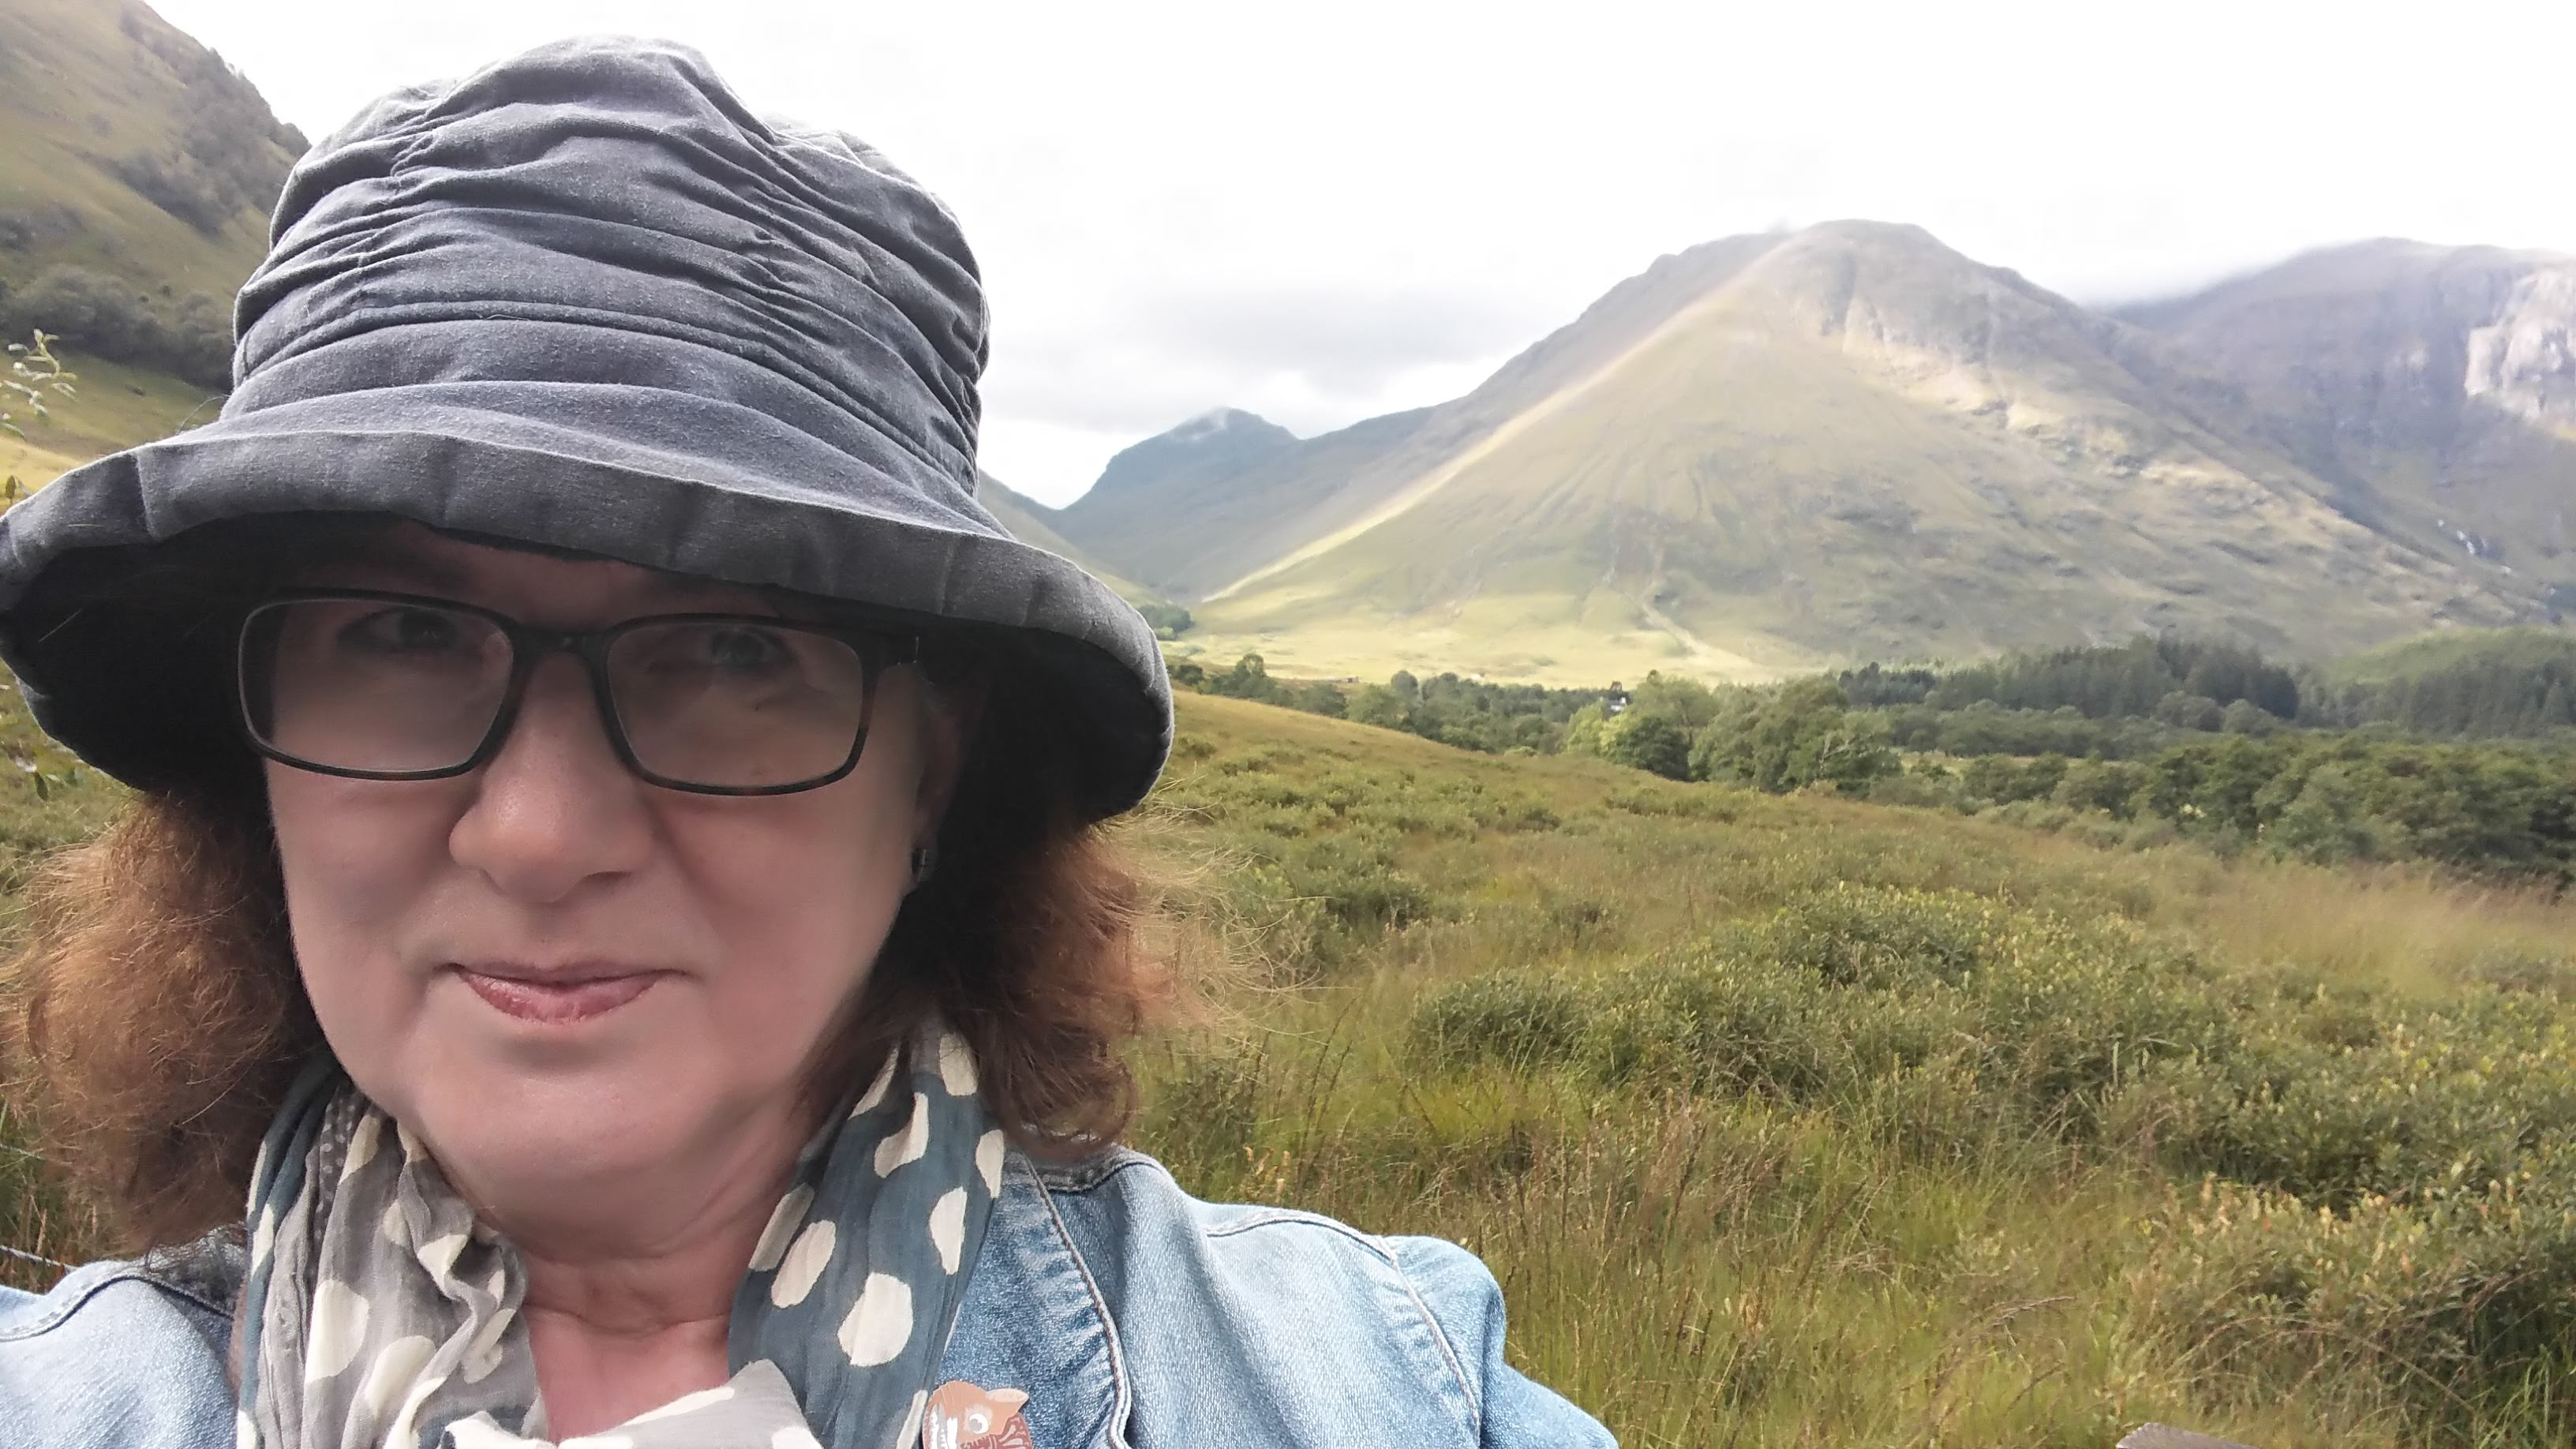 Photo Of Debbie Young At Glencoe Where She Went To Take A Break